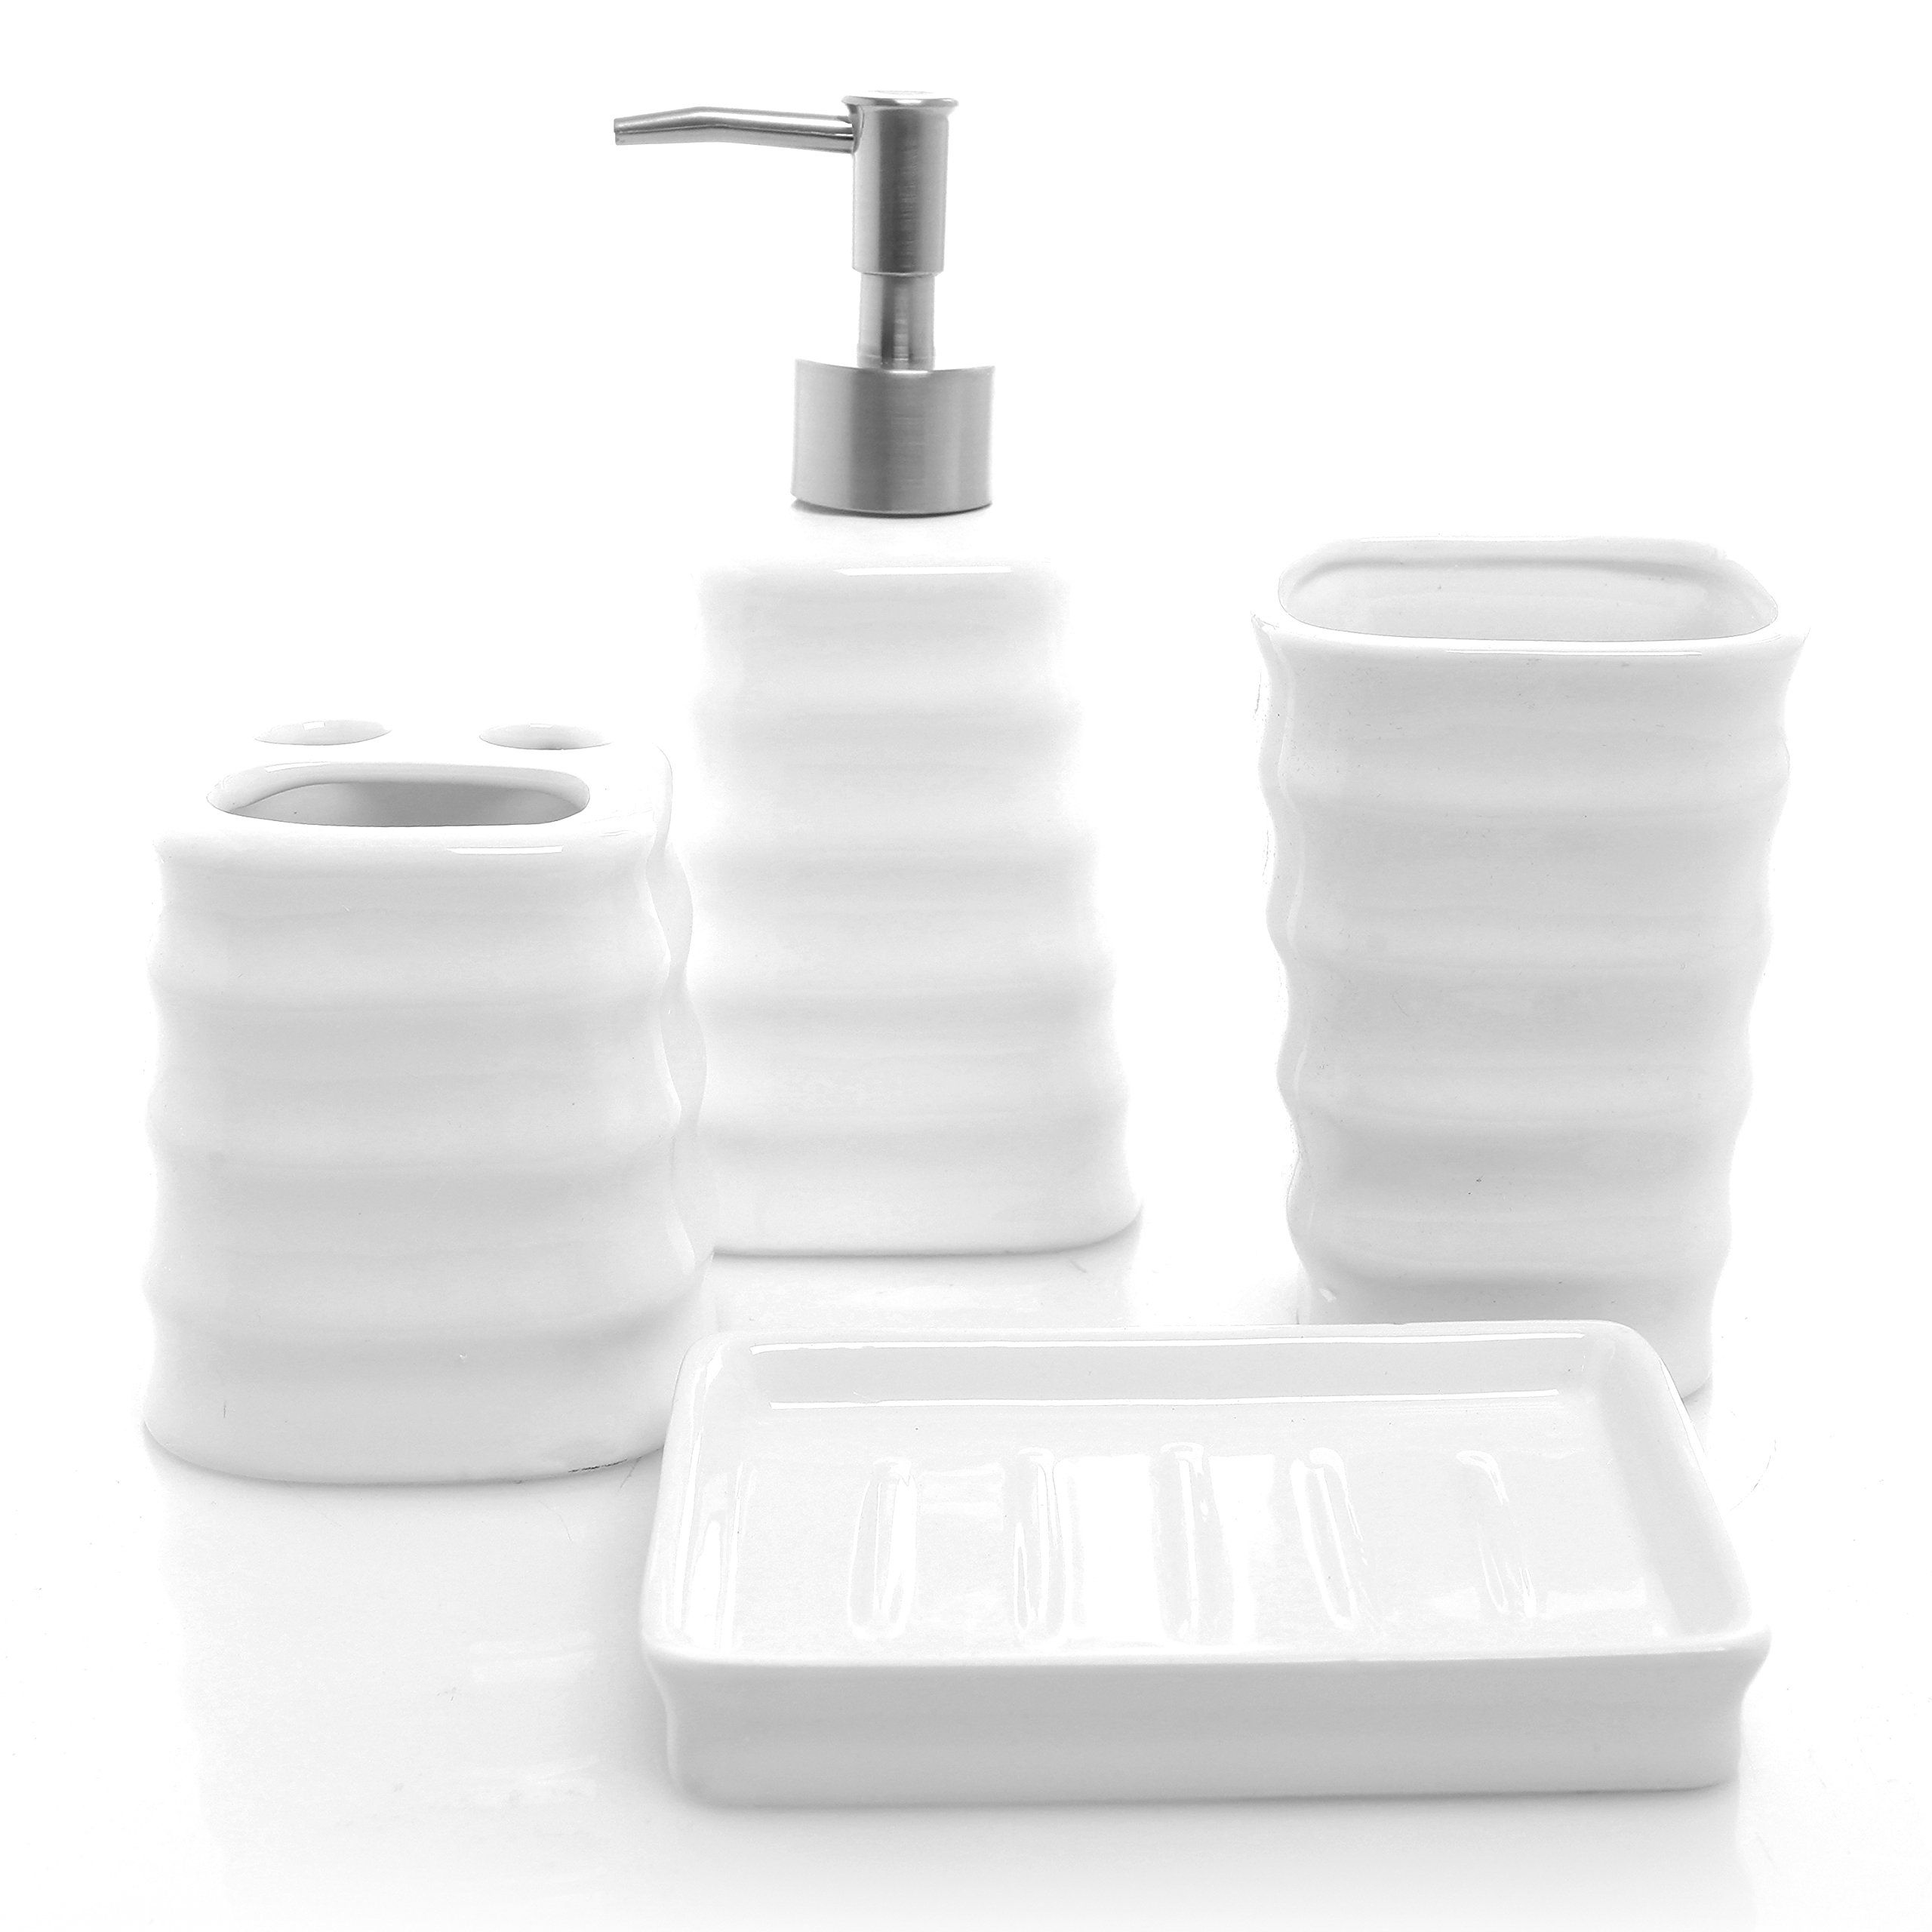 Justnile 4piece Bathroom Accessory Set Elegant Ceramic White With Crystal Stripe You Can Bathroom Accessories Bath Accessories Set Bathroom Accessories Sets